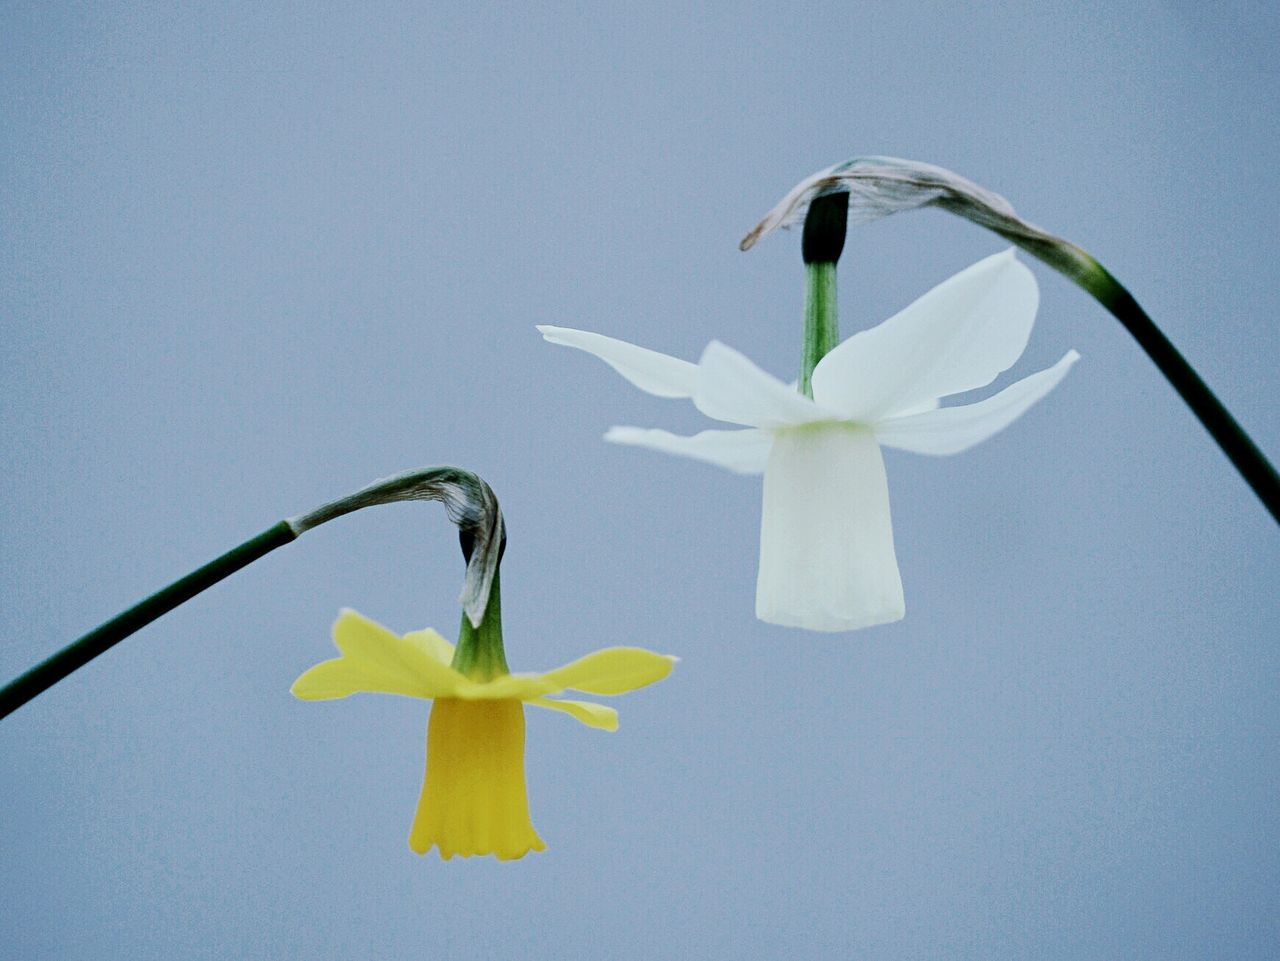 Low Angle View Of Yellow And White Daffodils Against Clear Sky